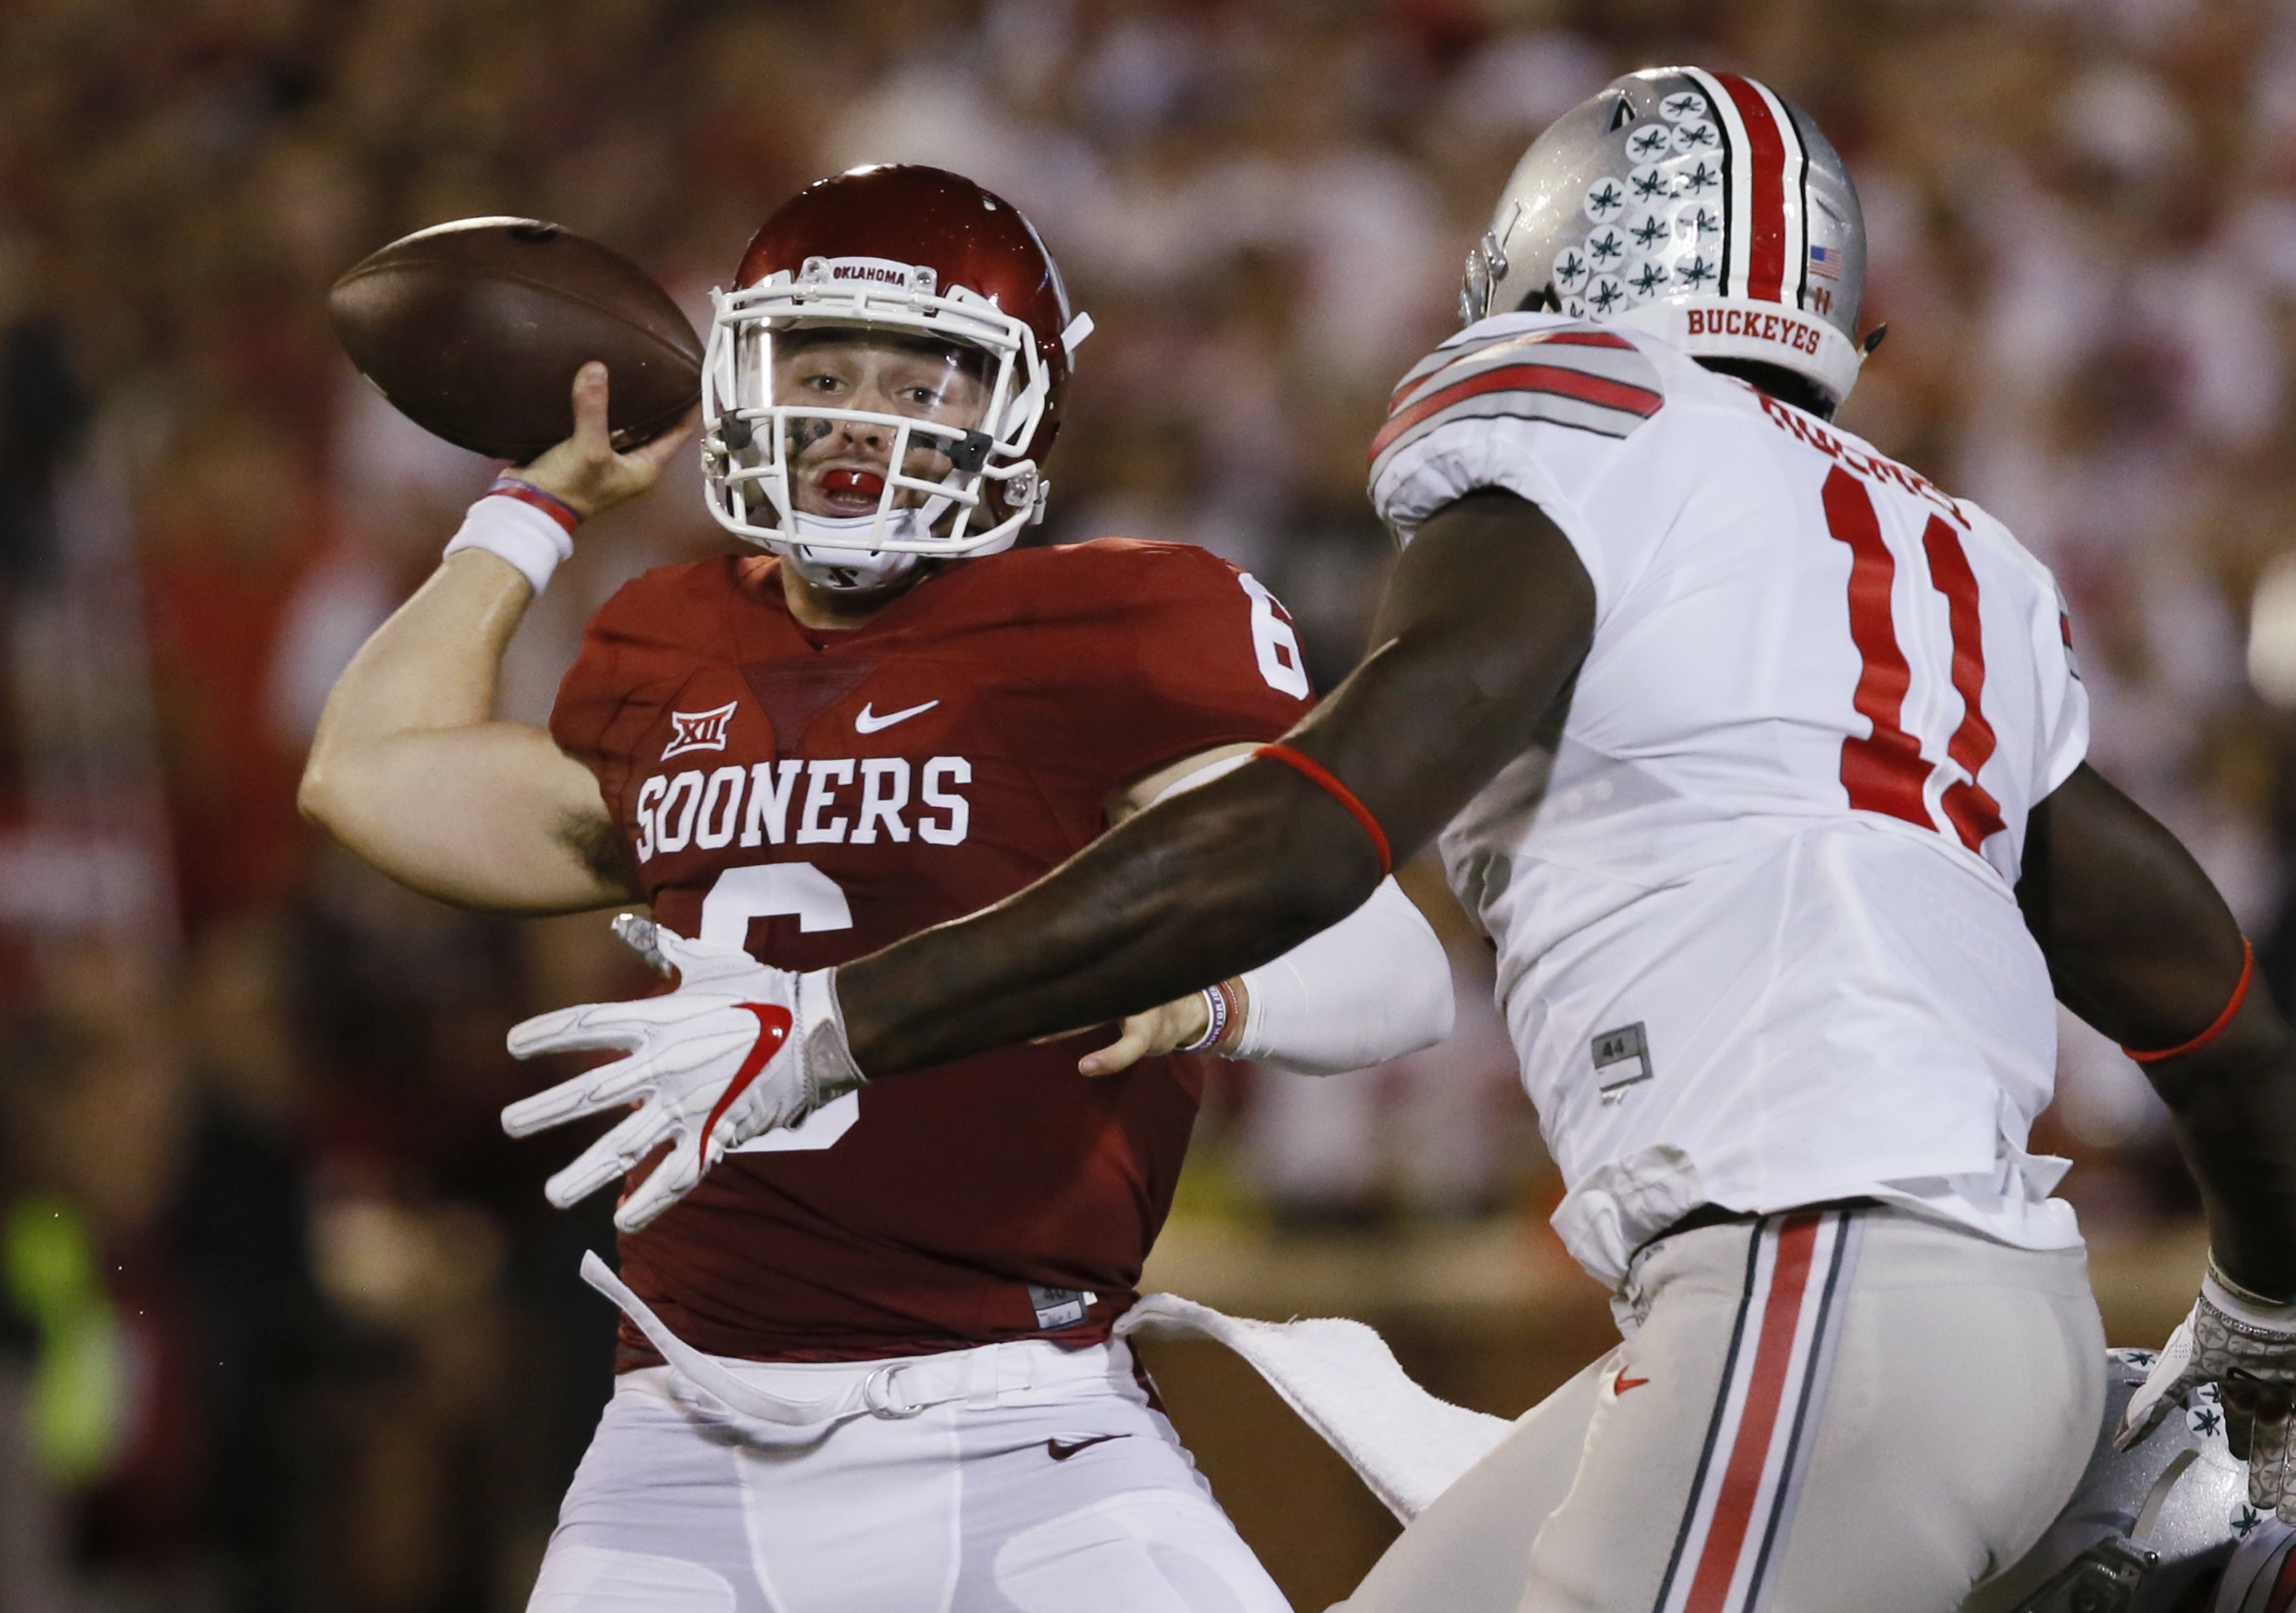 In this Saturday, Sept. 17, 2016, photo, Oklahoma quarterback Baker Mayfield, left, throws under pressure from Ohio State defensive end Jalyn Holmes (11) in the first quarter of an NCAA college football game in Norman, Okla. Mayfield has accomplished a gr